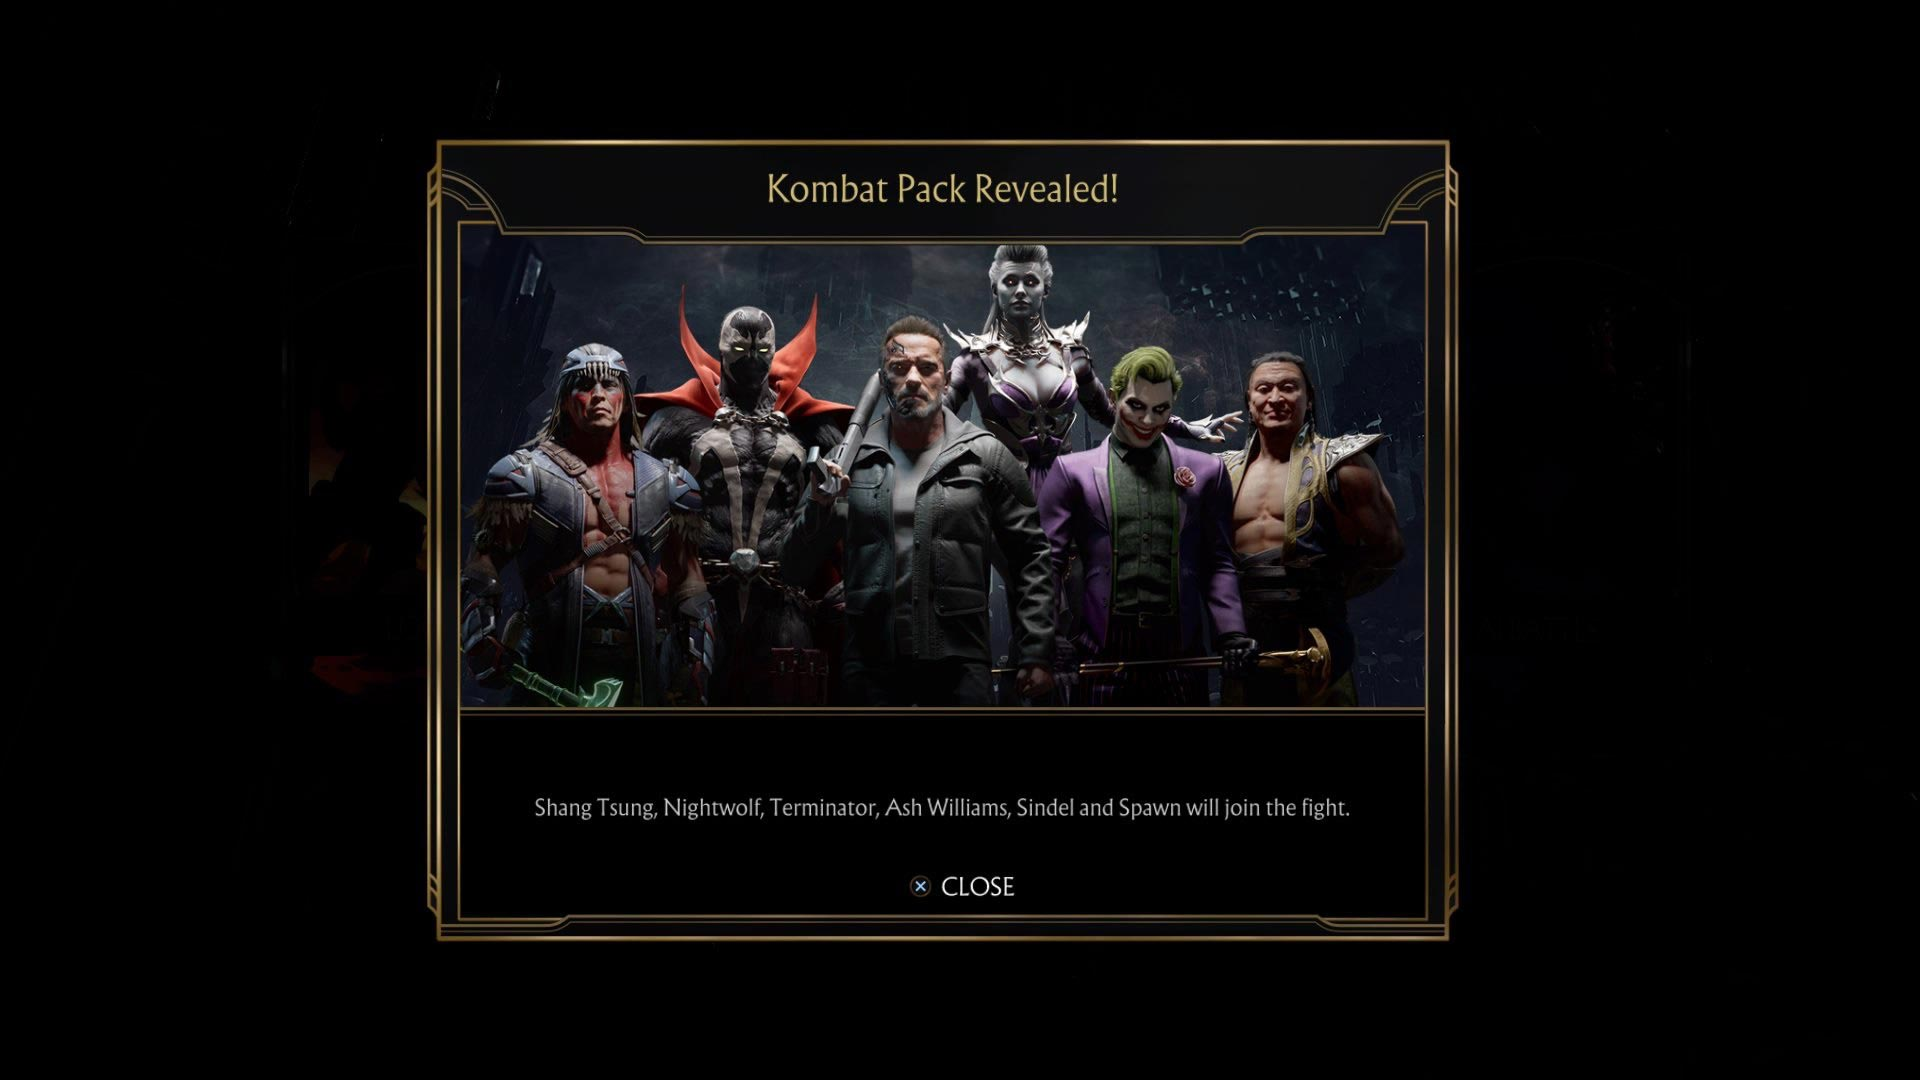 Potential in-game message error leaks another Mortal Kombat 11 DLC characters 2 out of 3 image gallery